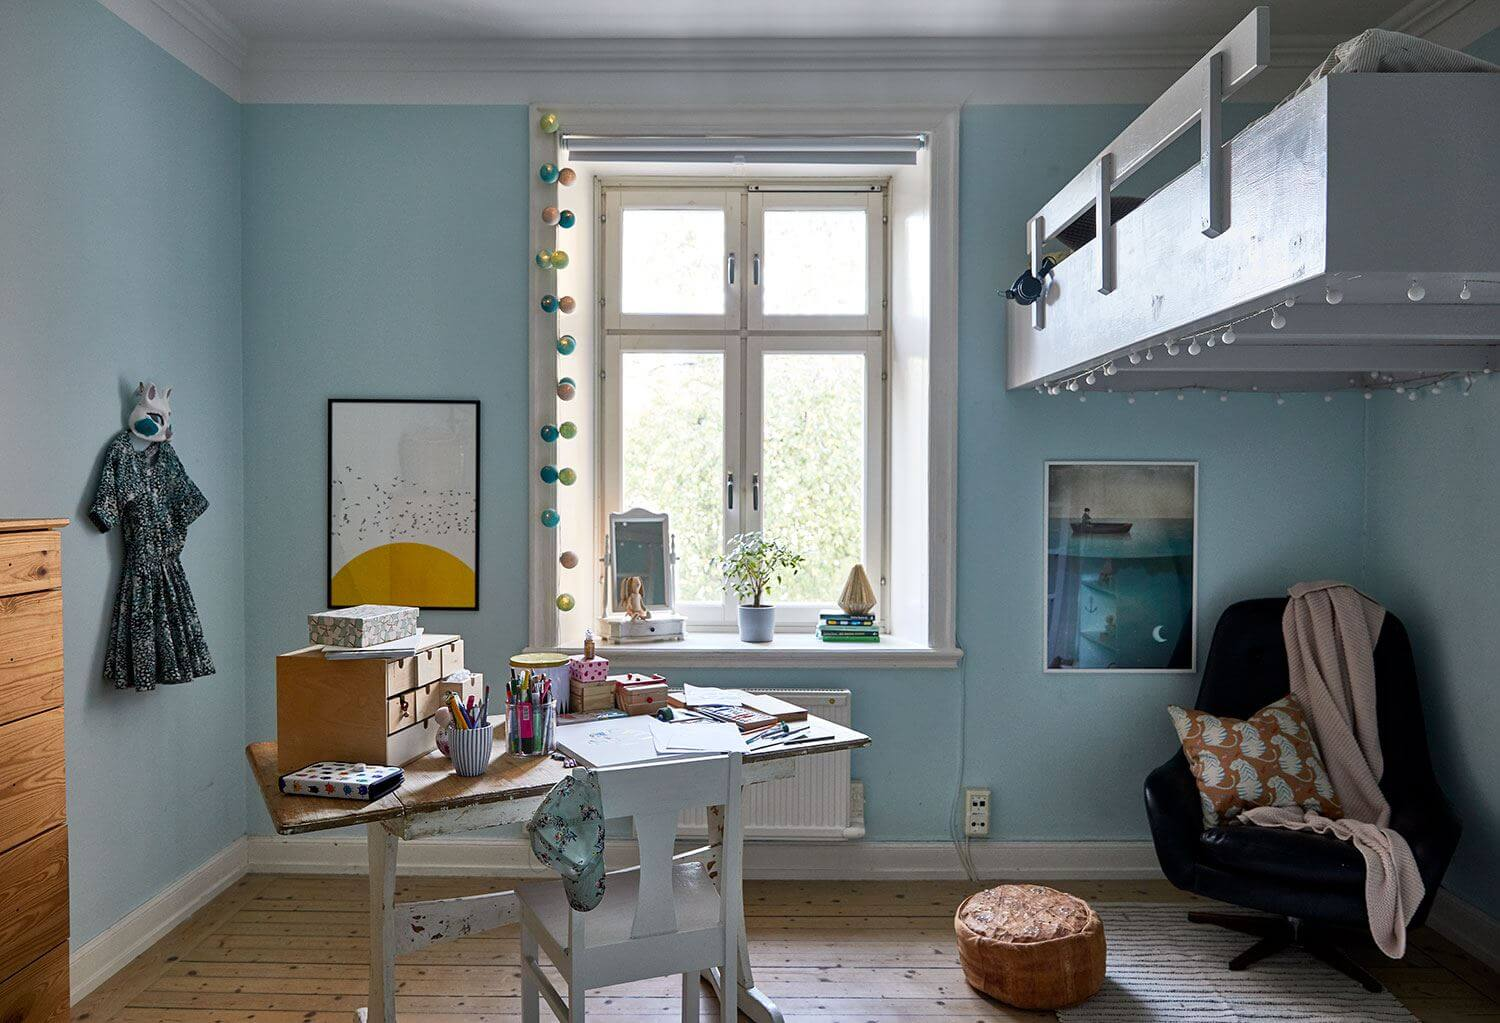 Vintage home with colourful accents